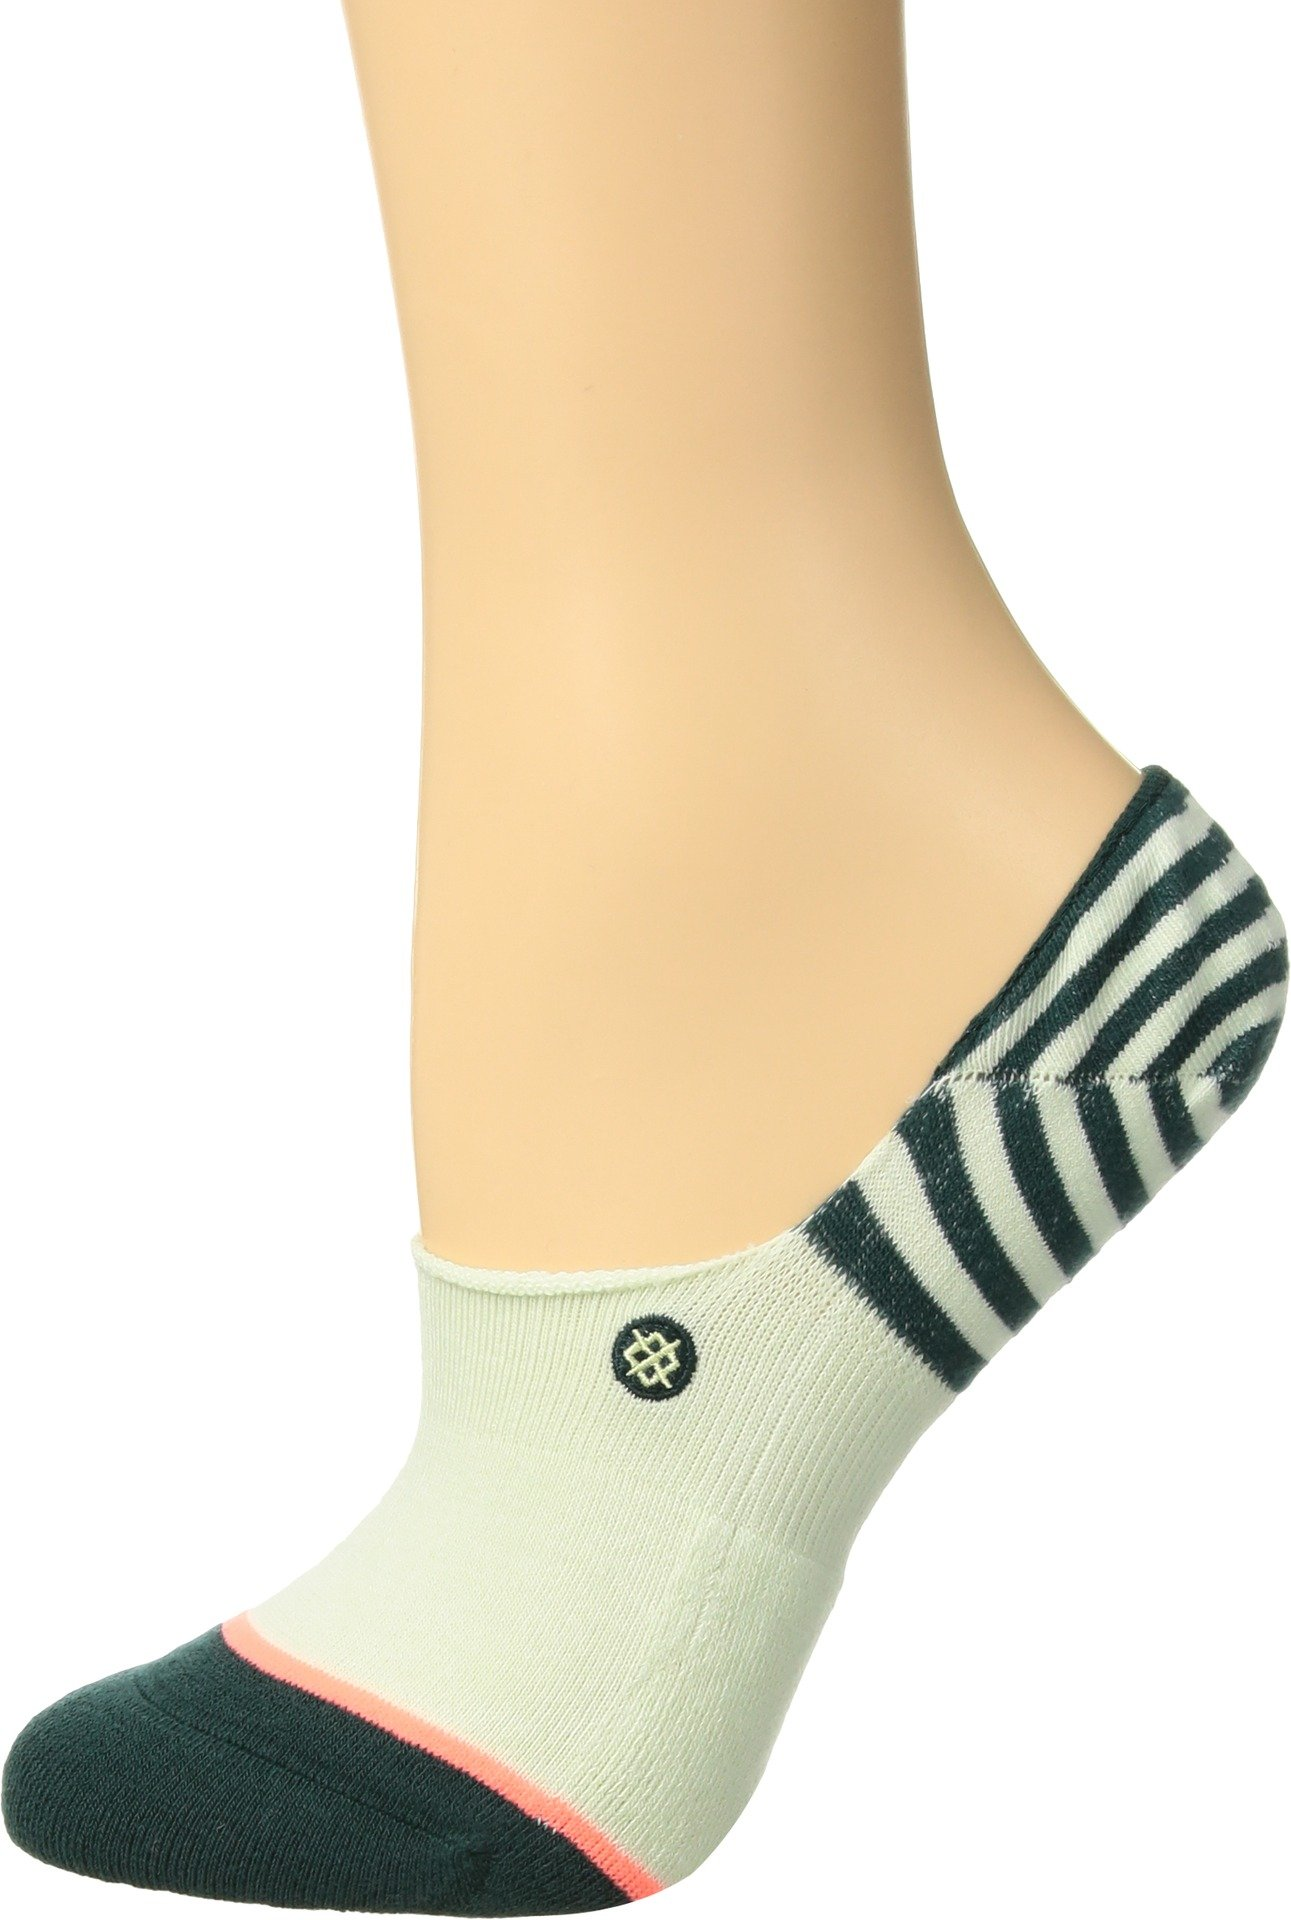 Stance Women's Uncommon Invisible Liner Socks (1 and 3 Packs), Green, Medium